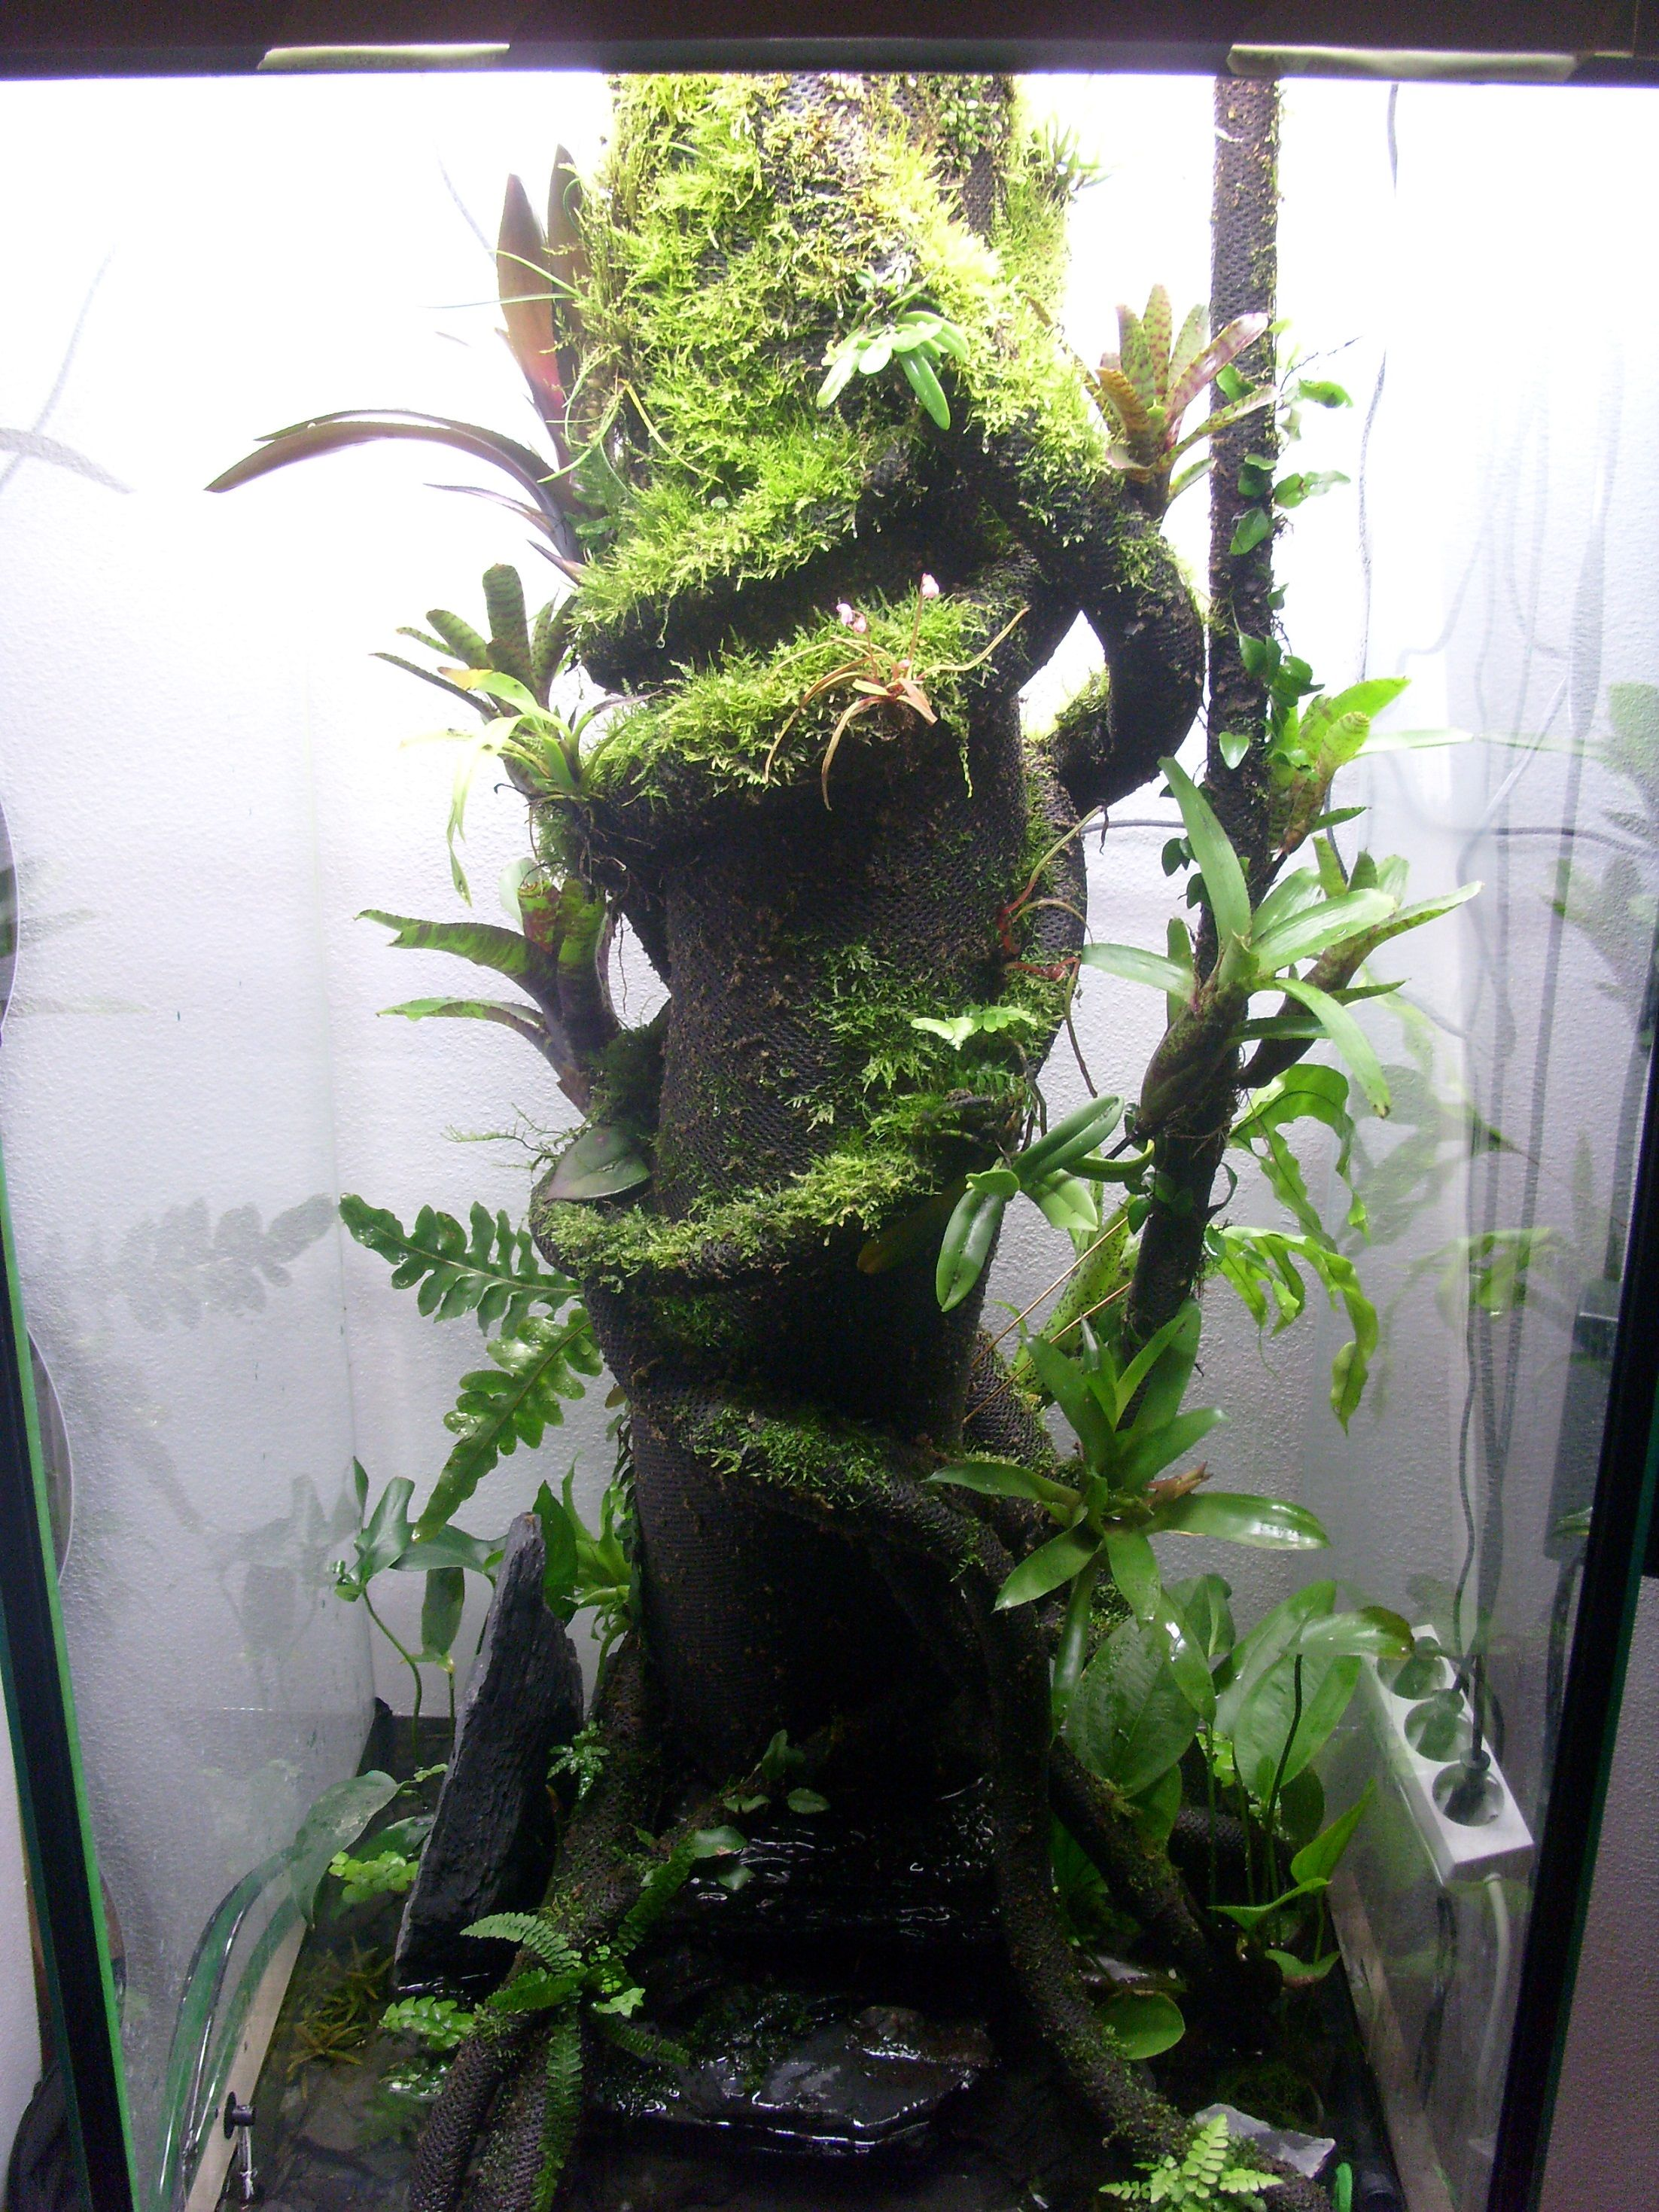 Frog paludarium xxcm with water after months trunk and